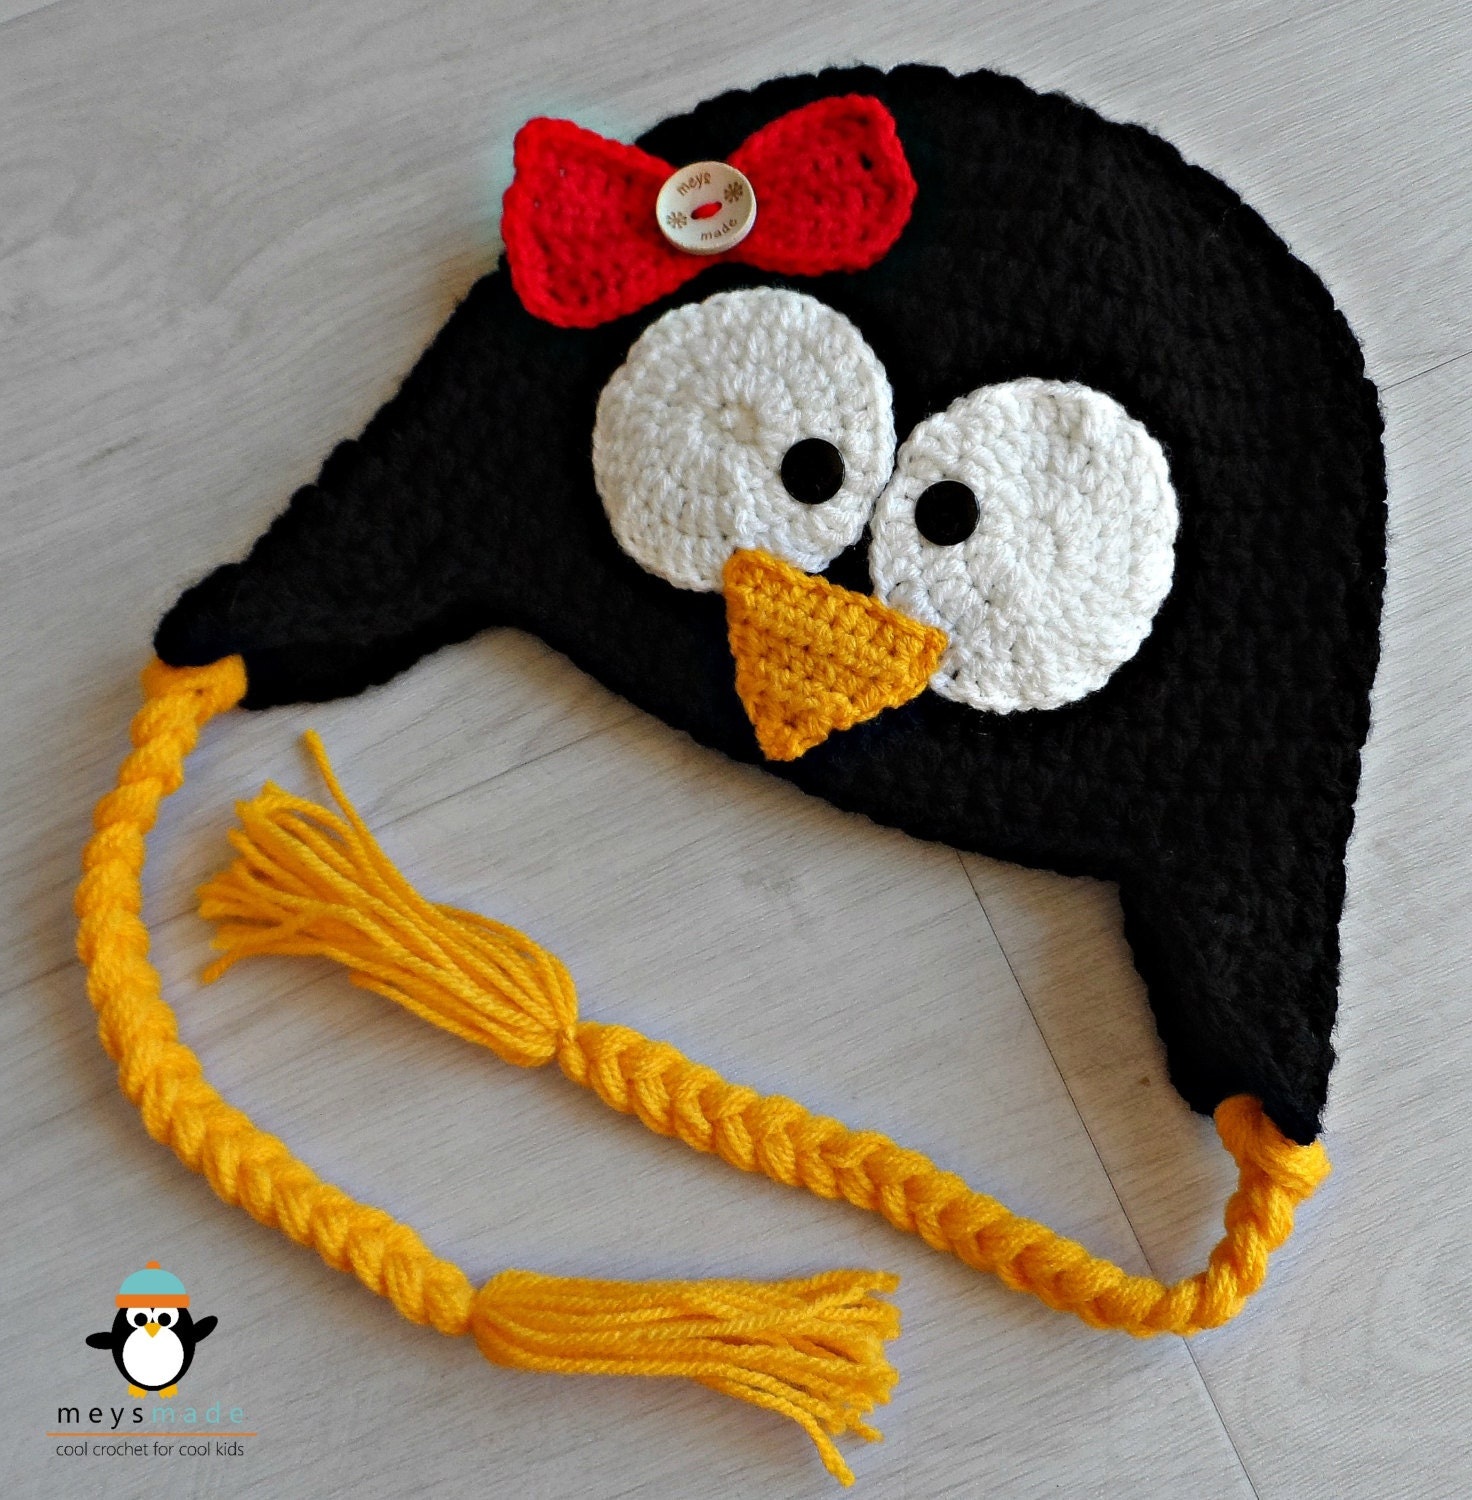 Custom Crochet Penguin Earflap Animal Hat for Newborn Baby, Infant Toddler, Child, or Cute Photo Prop by MEYS MADE for Cool Kids - MeysMadeCoolCrochet